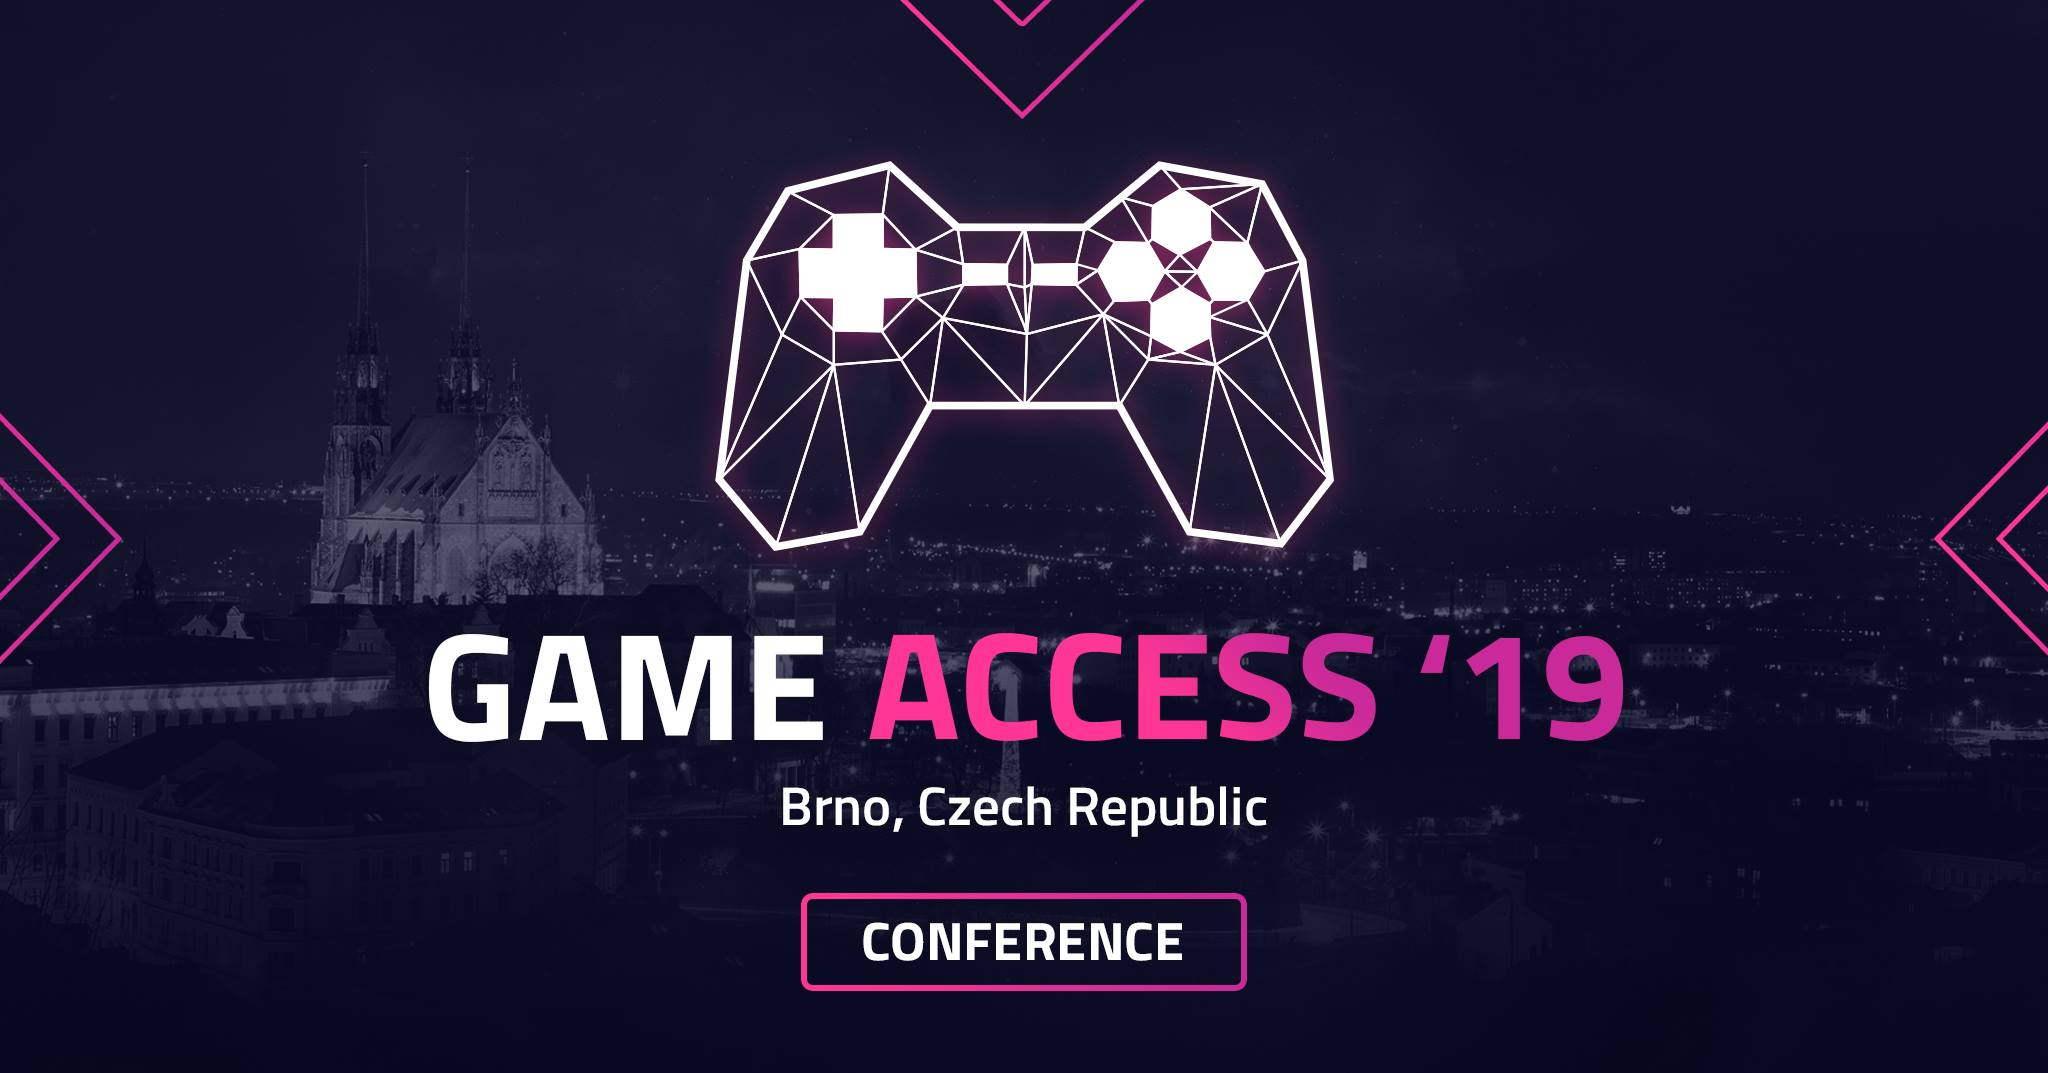 Game Access Conference '19 | 24-25 May 2019, Brno, Czech